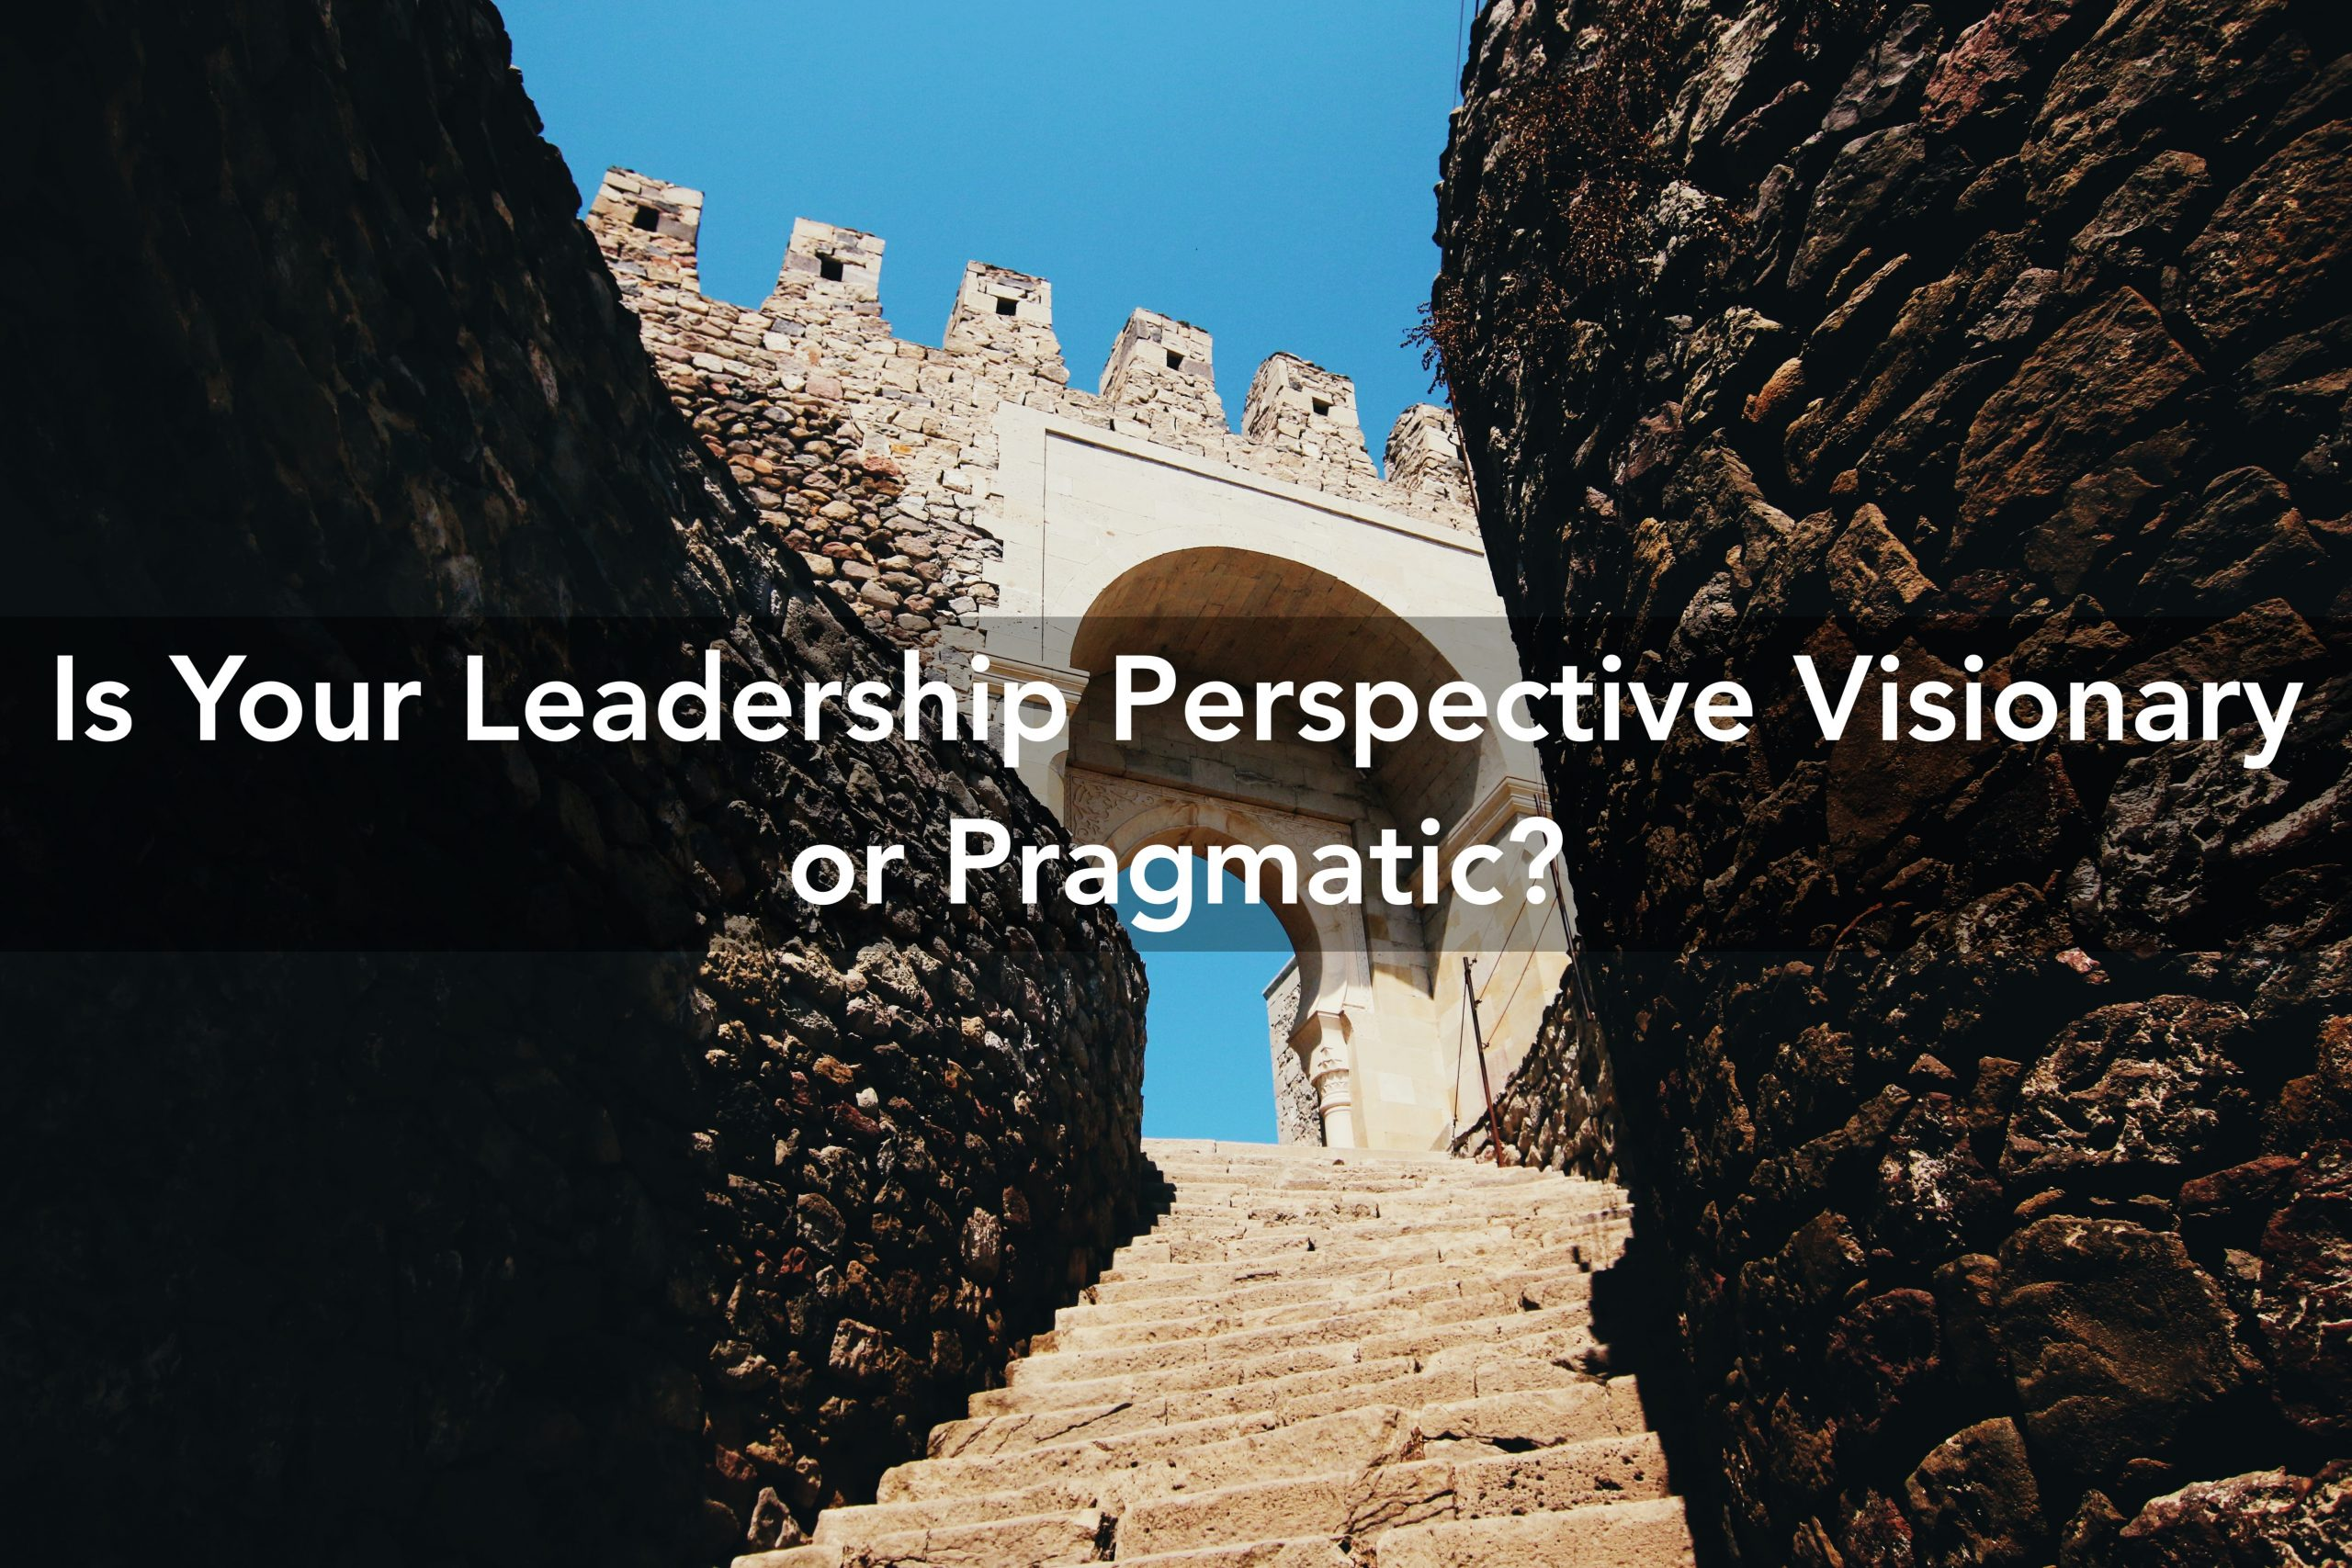 Leadership Perspective